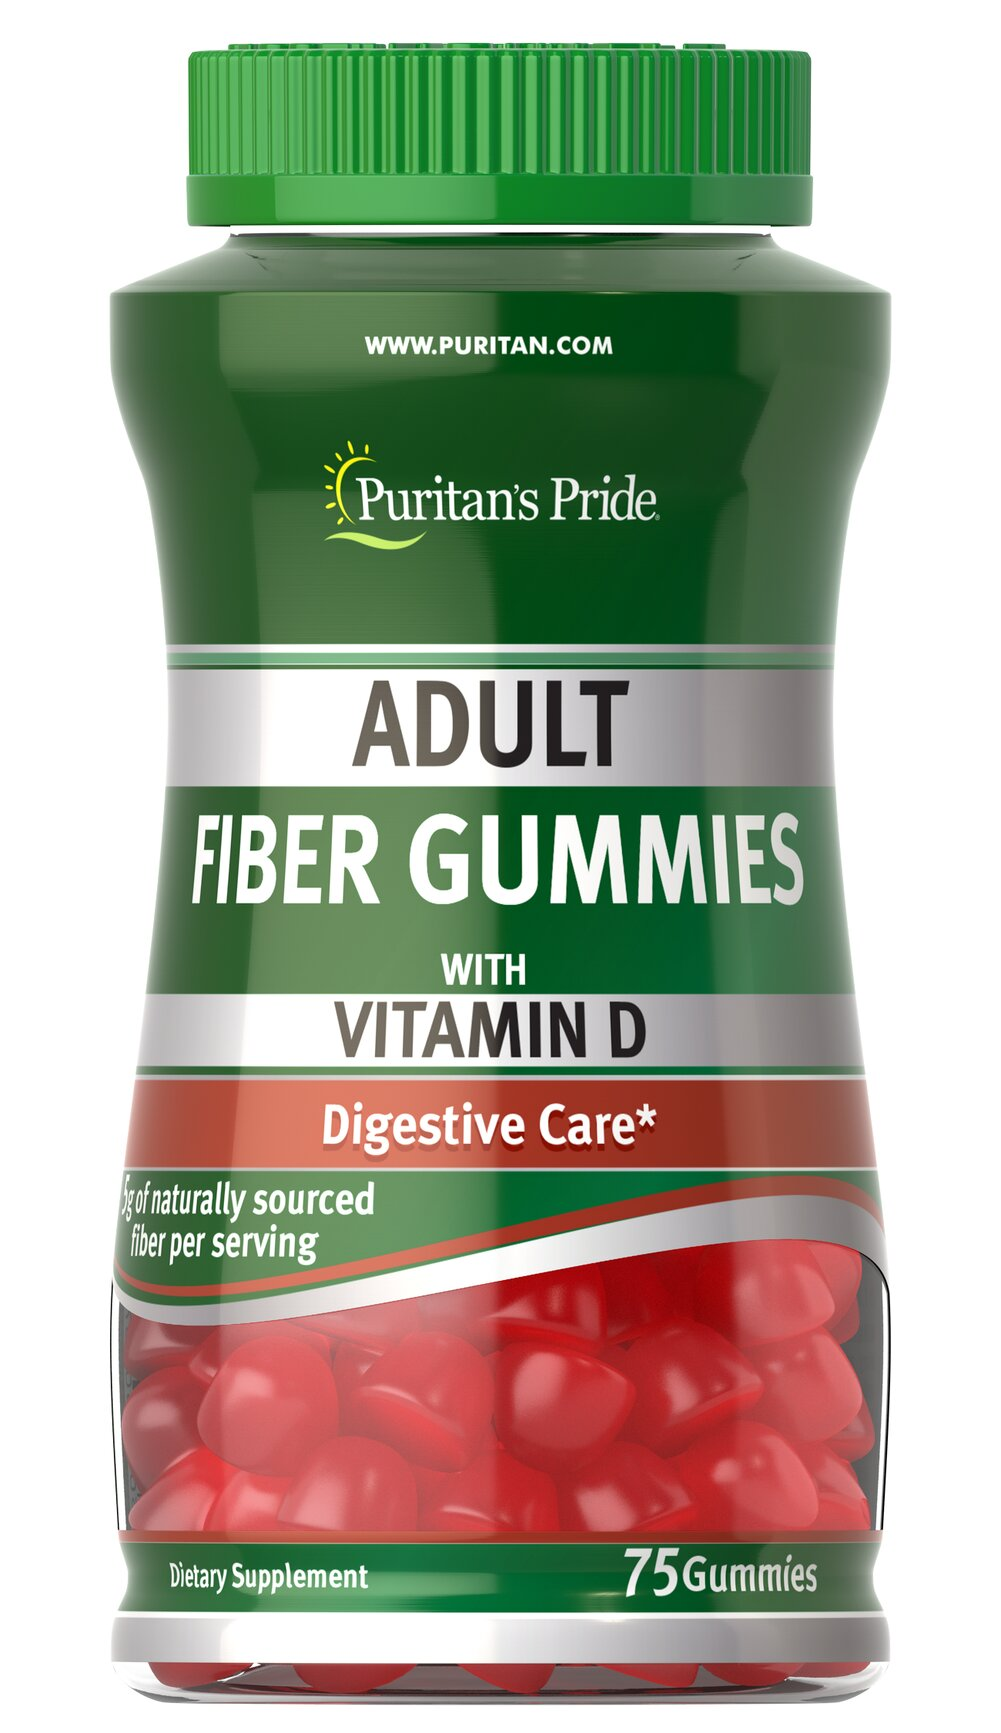 Adult Fiber Gummies with Vitamin D Thumbnail Alternate Bottle View